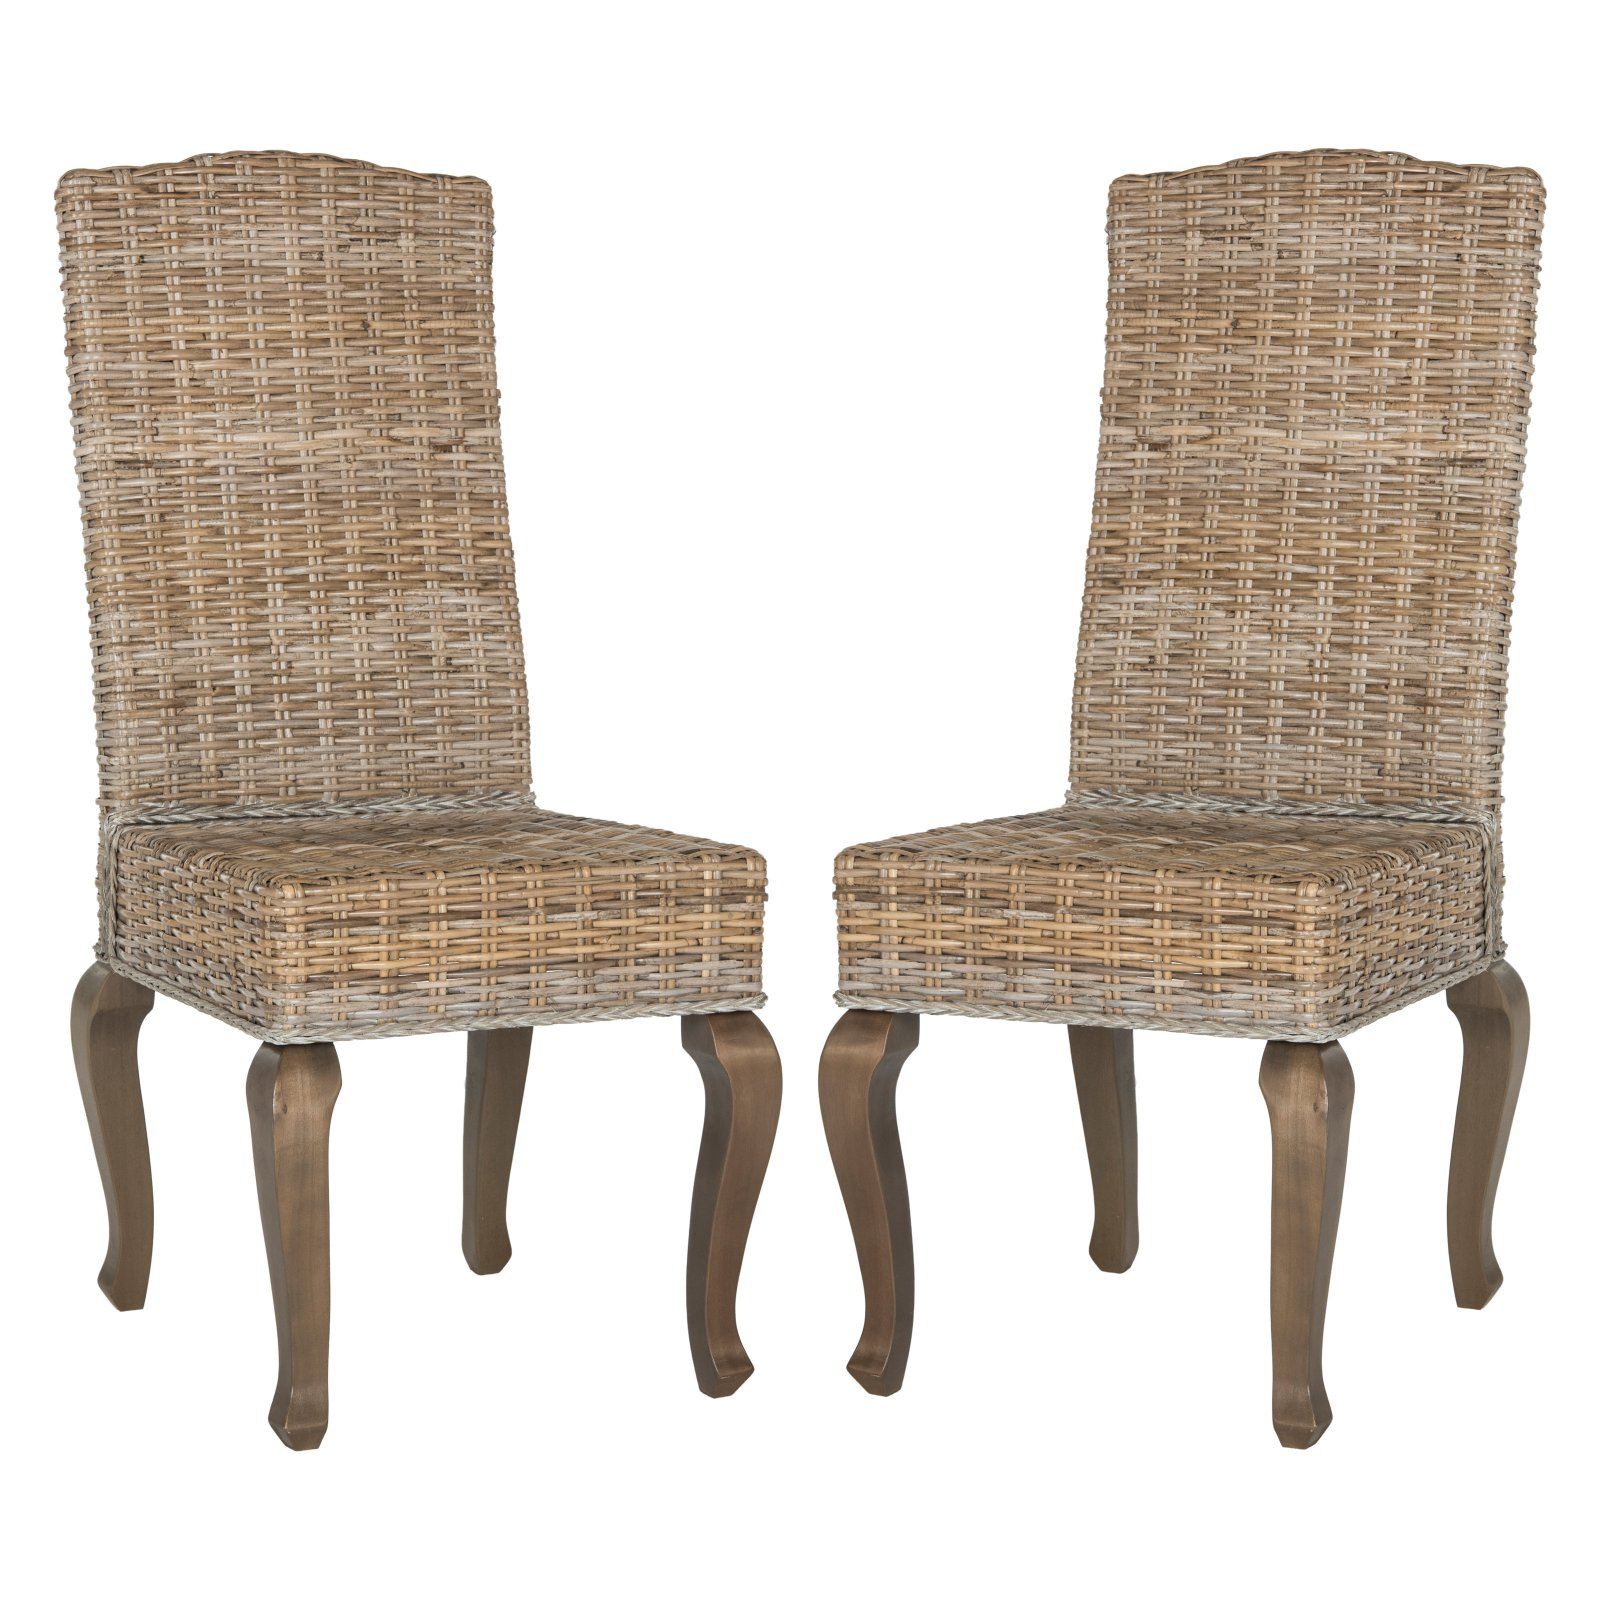 Safavieh Milos 18 High Wicker Dining Chairs Multiple Colors Set